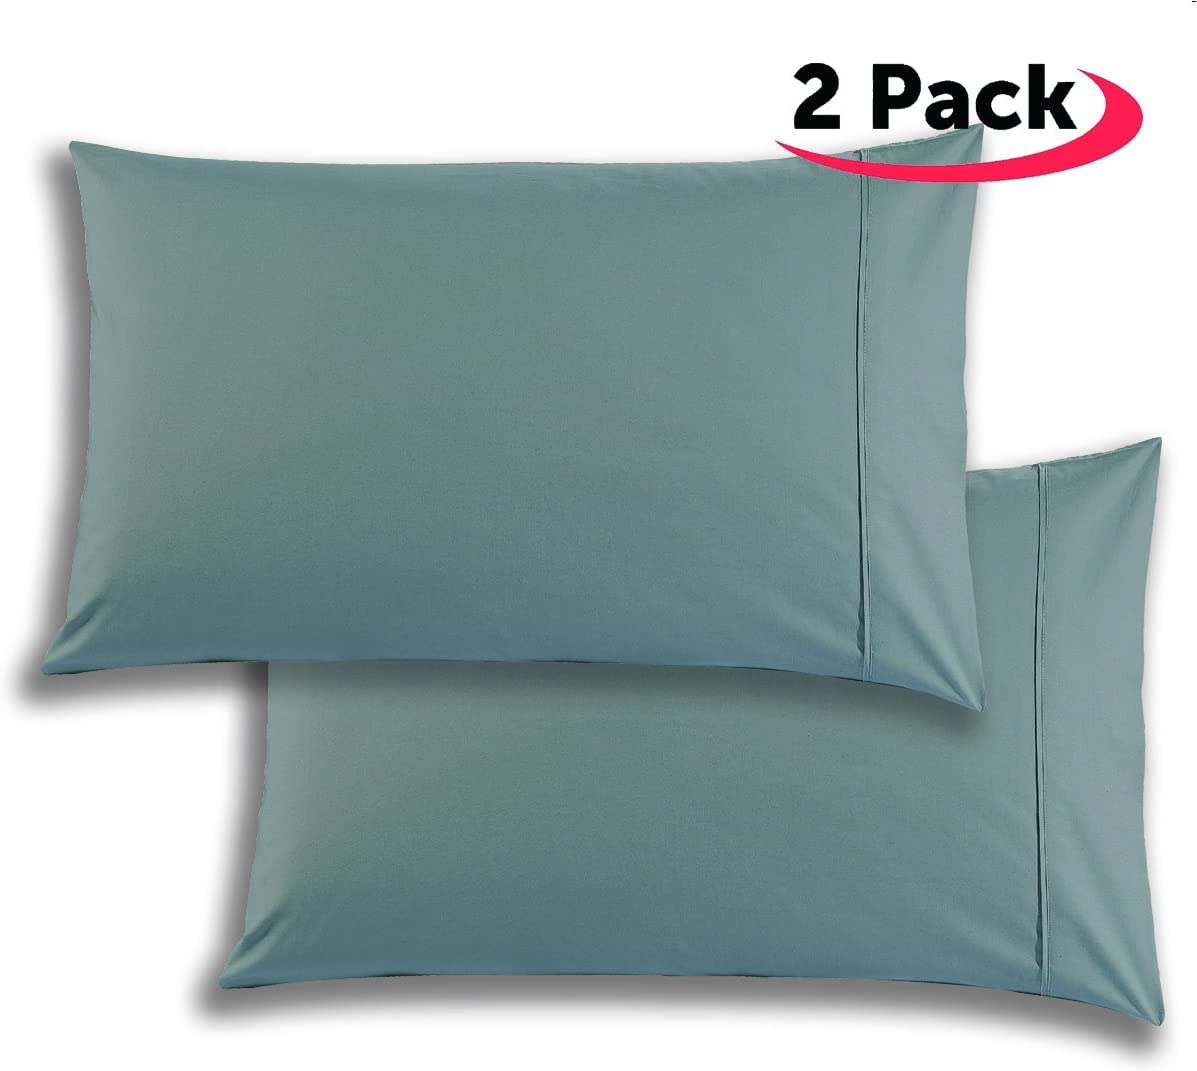 Mellanni 100% Cotton Pillowcase Set - 300 Thread Count Percale - Quality Luxury Bedding (Set of 2 King Size, Gray)